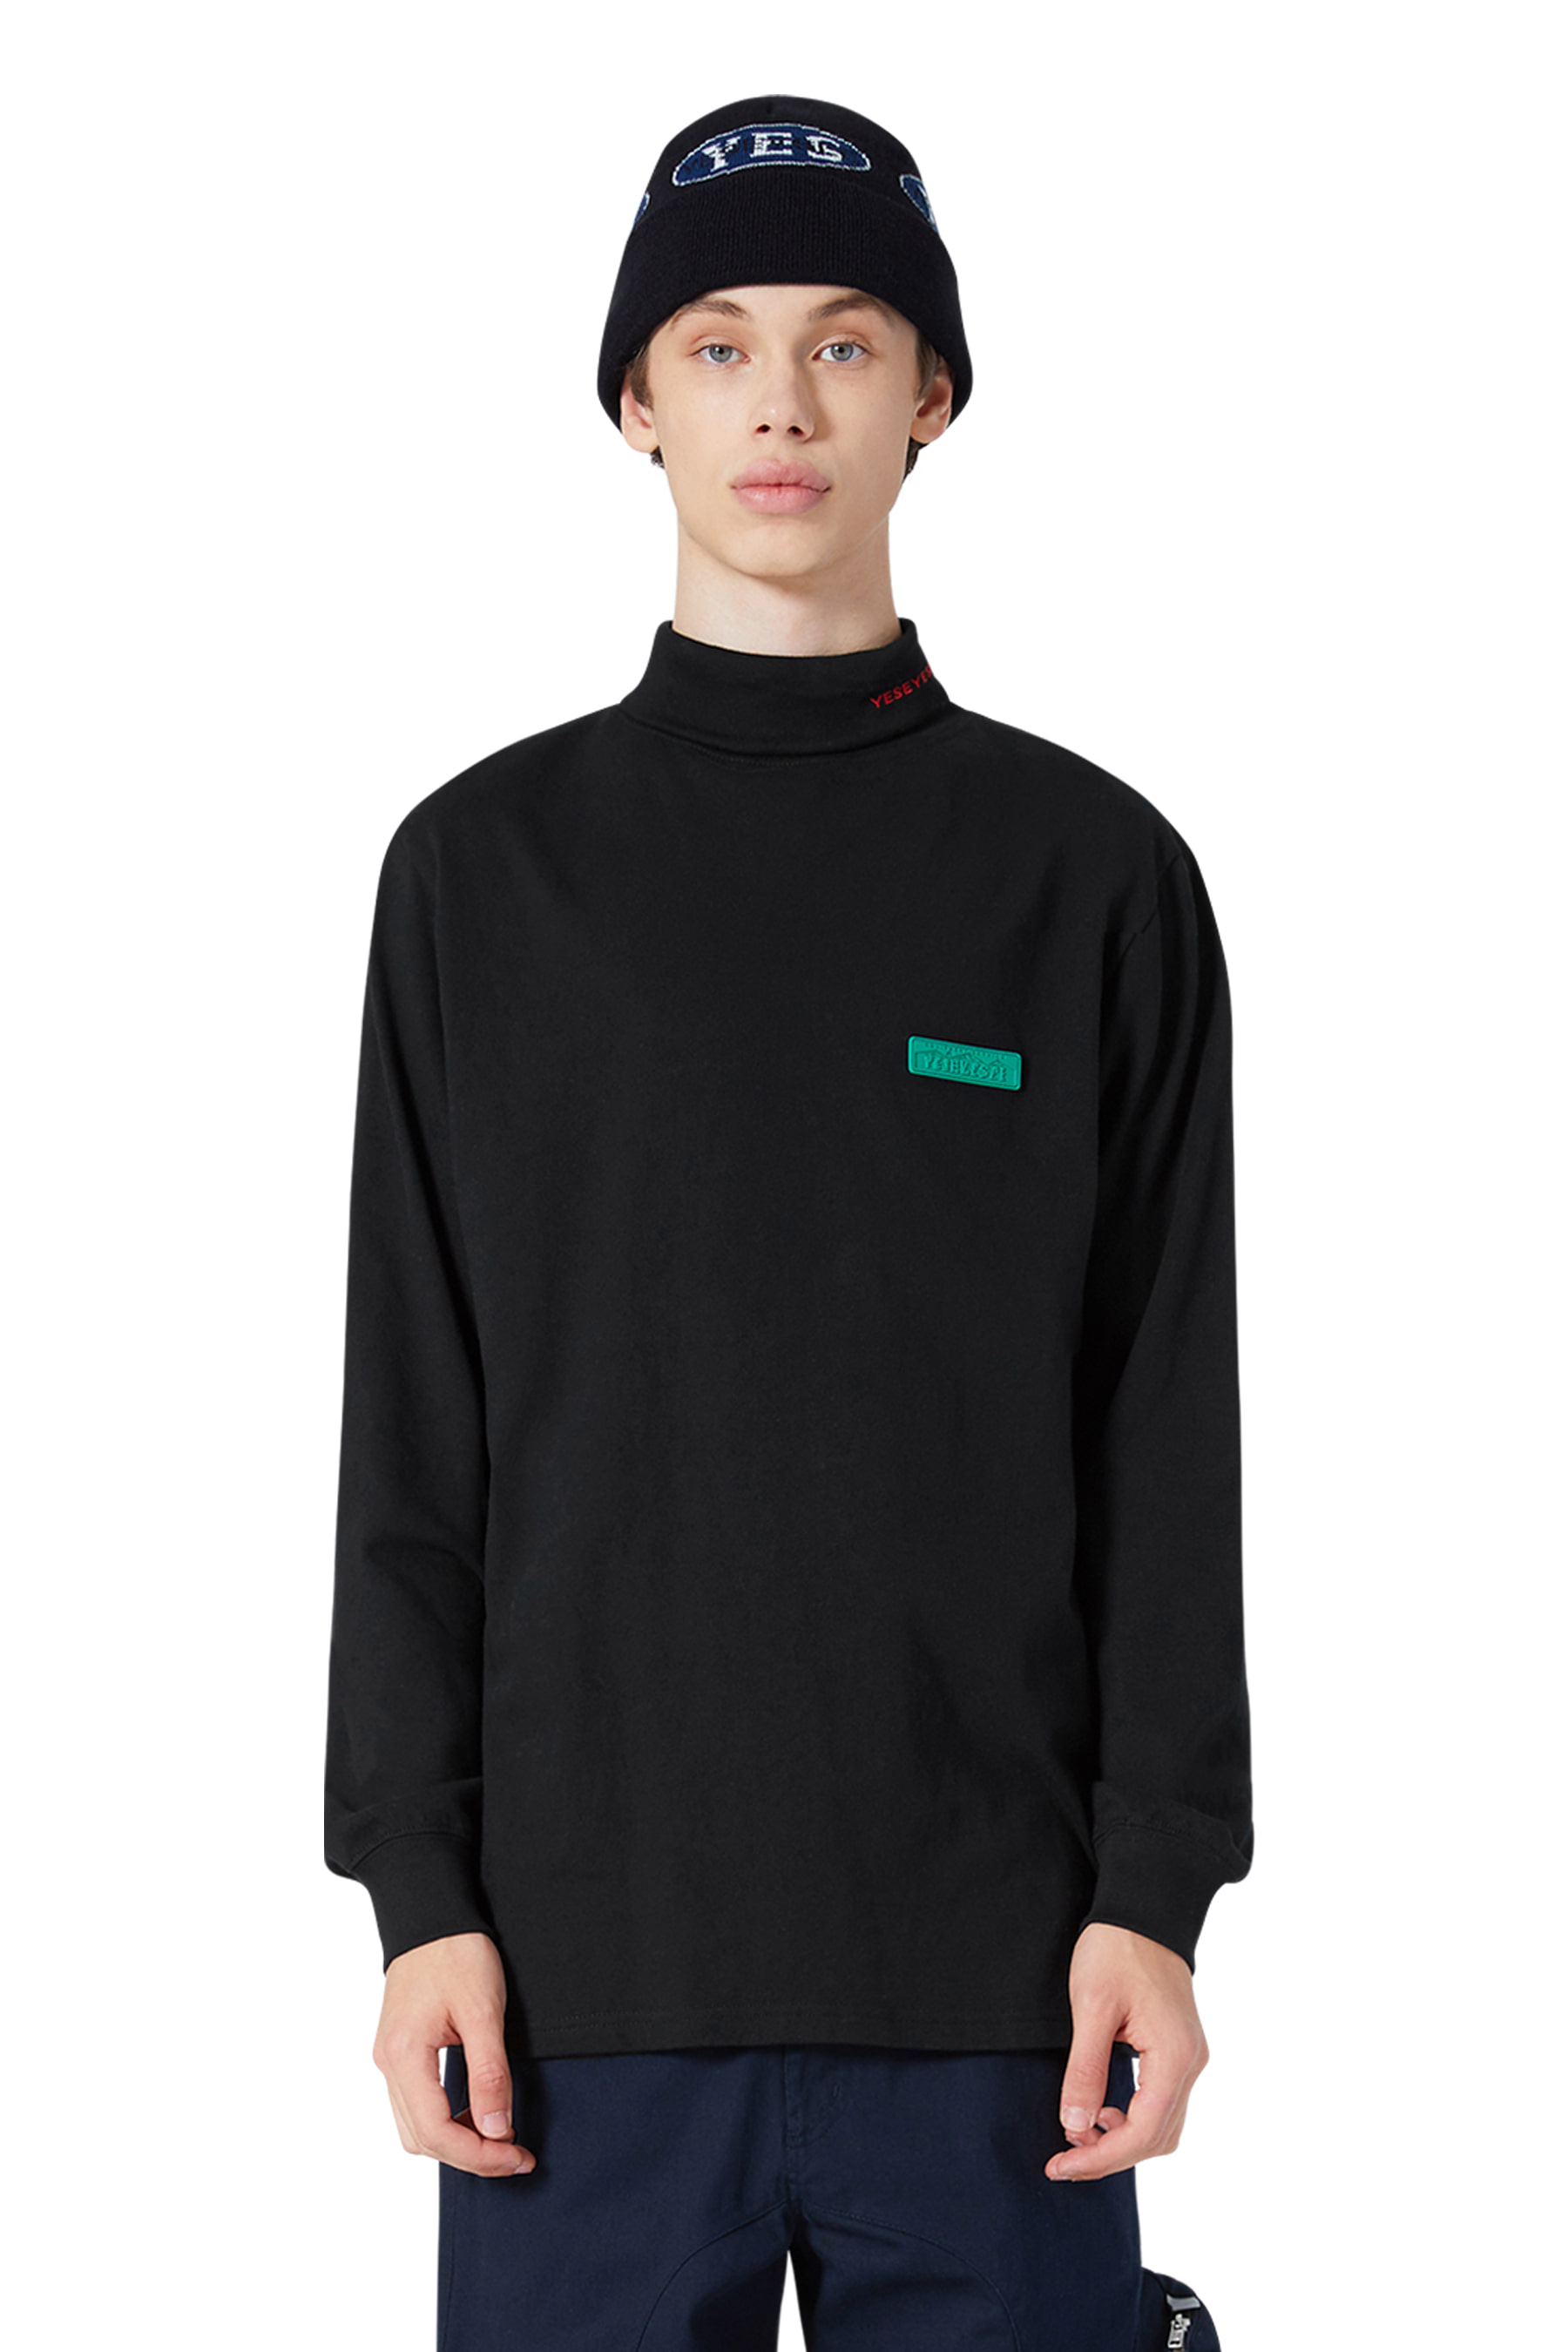 Y.E.S Twist Turtle Neck Black